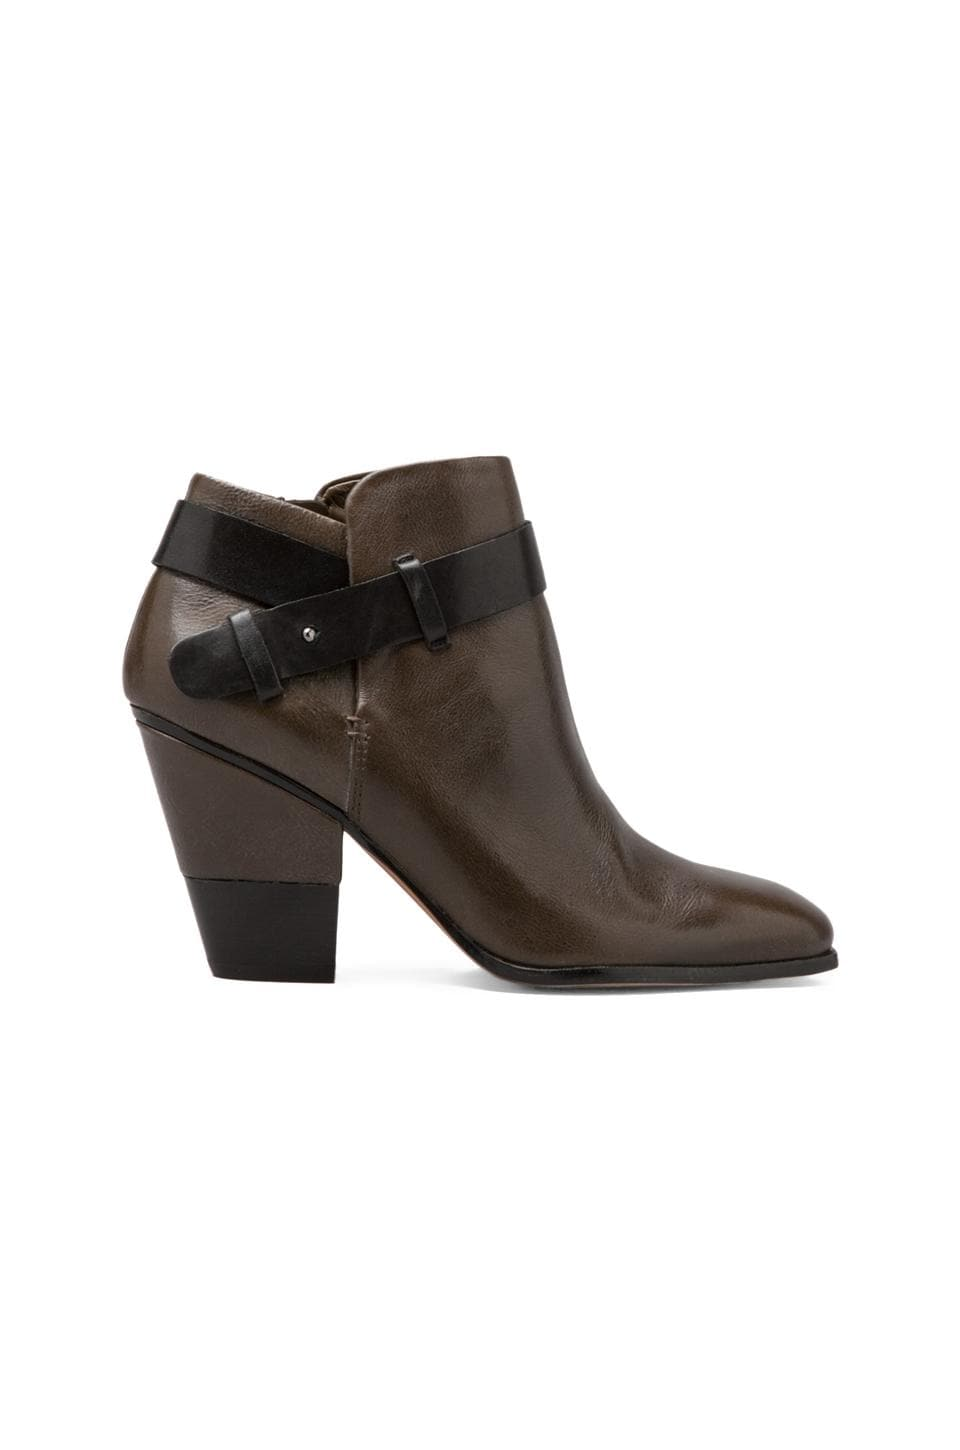 Dolce Vita Hilary Bootie in Olive